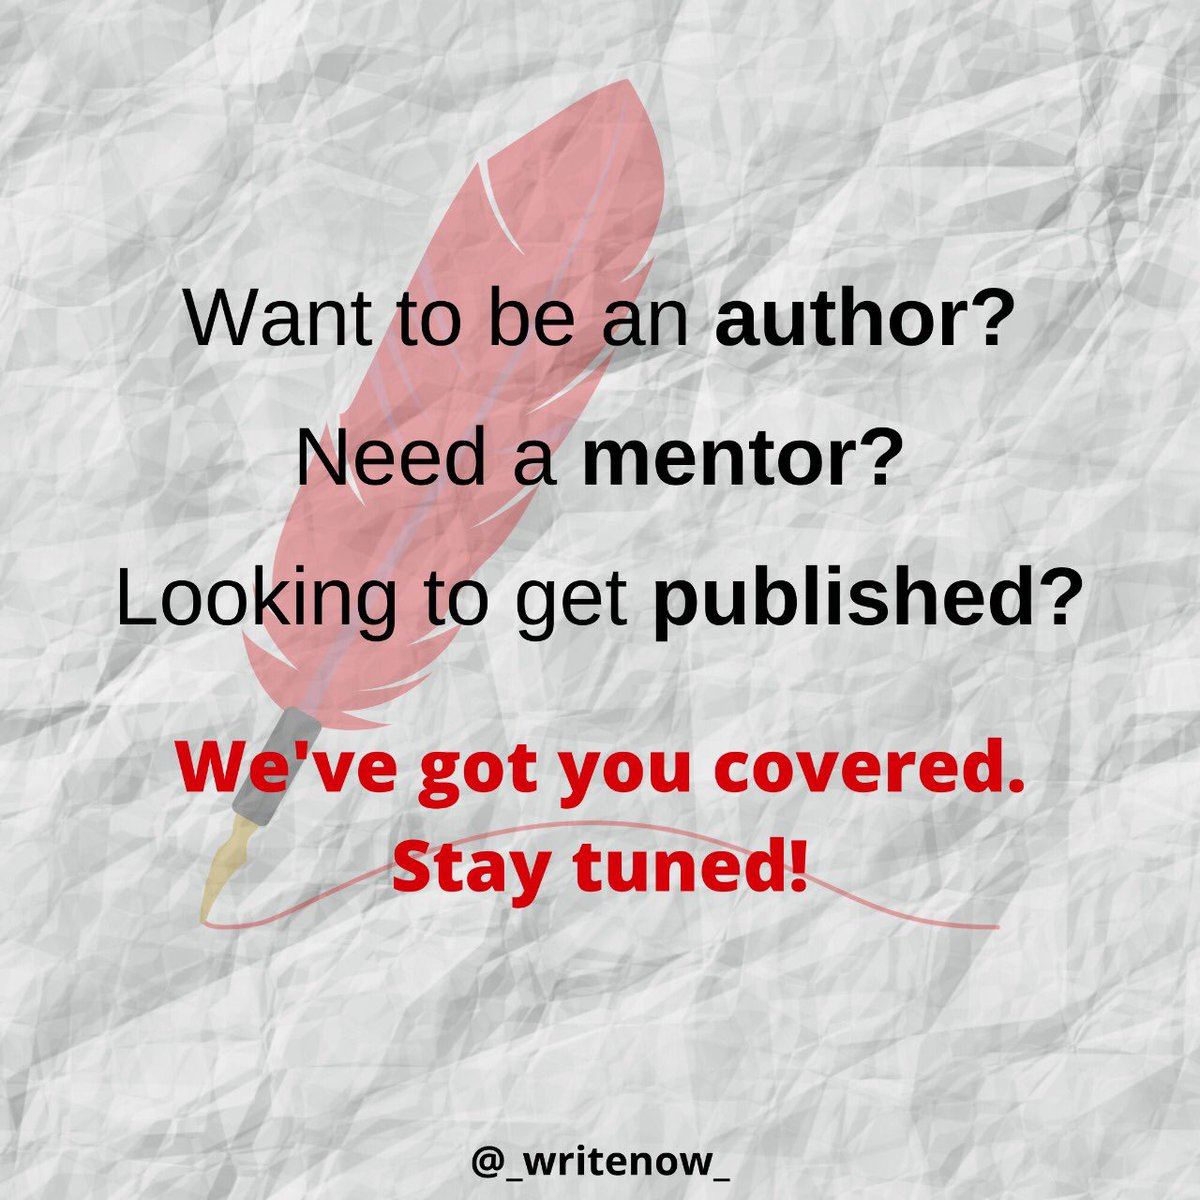 Write your way into the publishing world! Stay tuned to find out how!  #writers #writerslife #writersliftpic.twitter.com/xUHL9JlKsQ